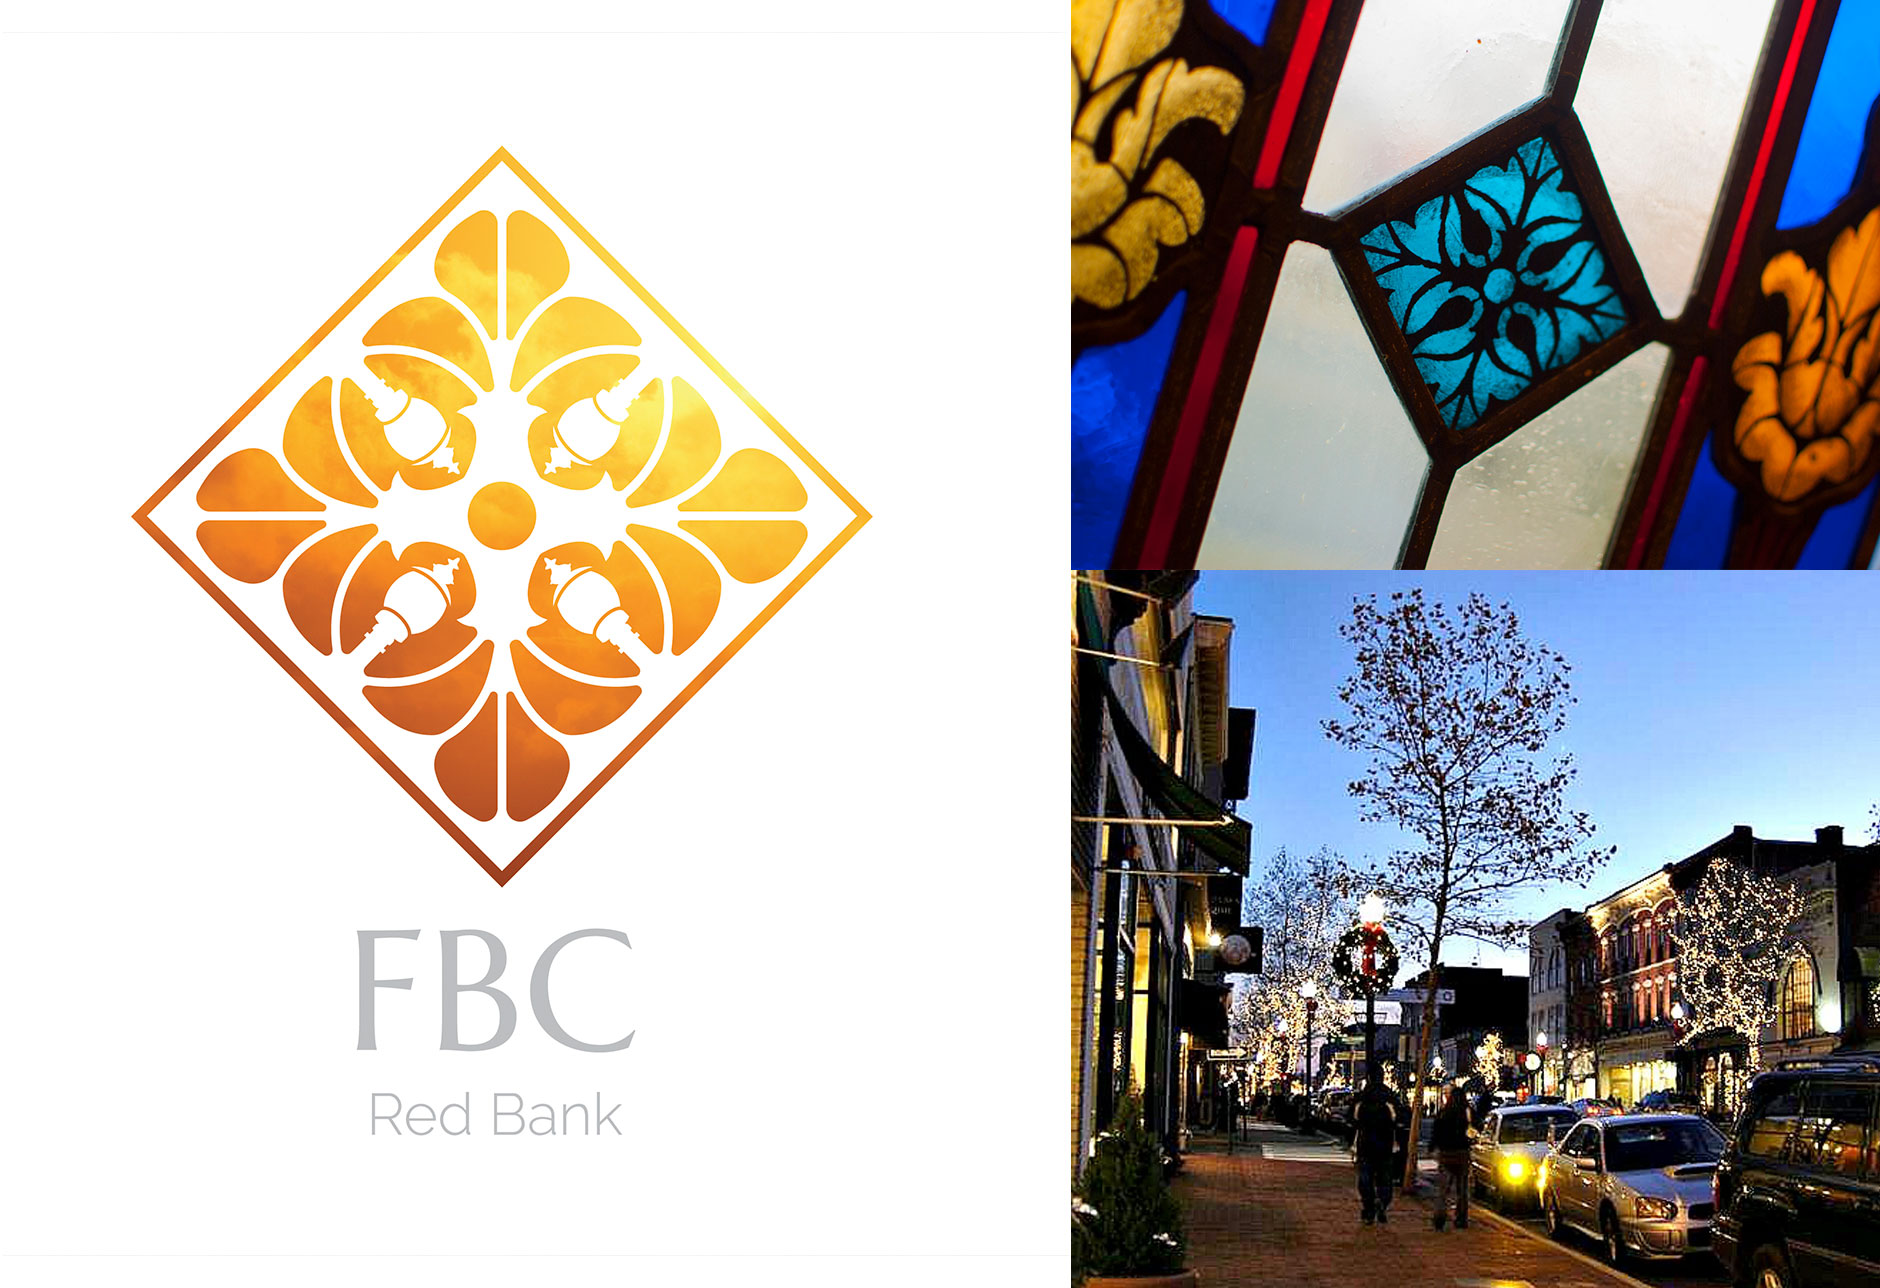 shine a light, FBC Red Bank, First Baptist Church of Red Bank, Red Bank New Jersey, logo design, brand identity, rebrand, stained glass, light